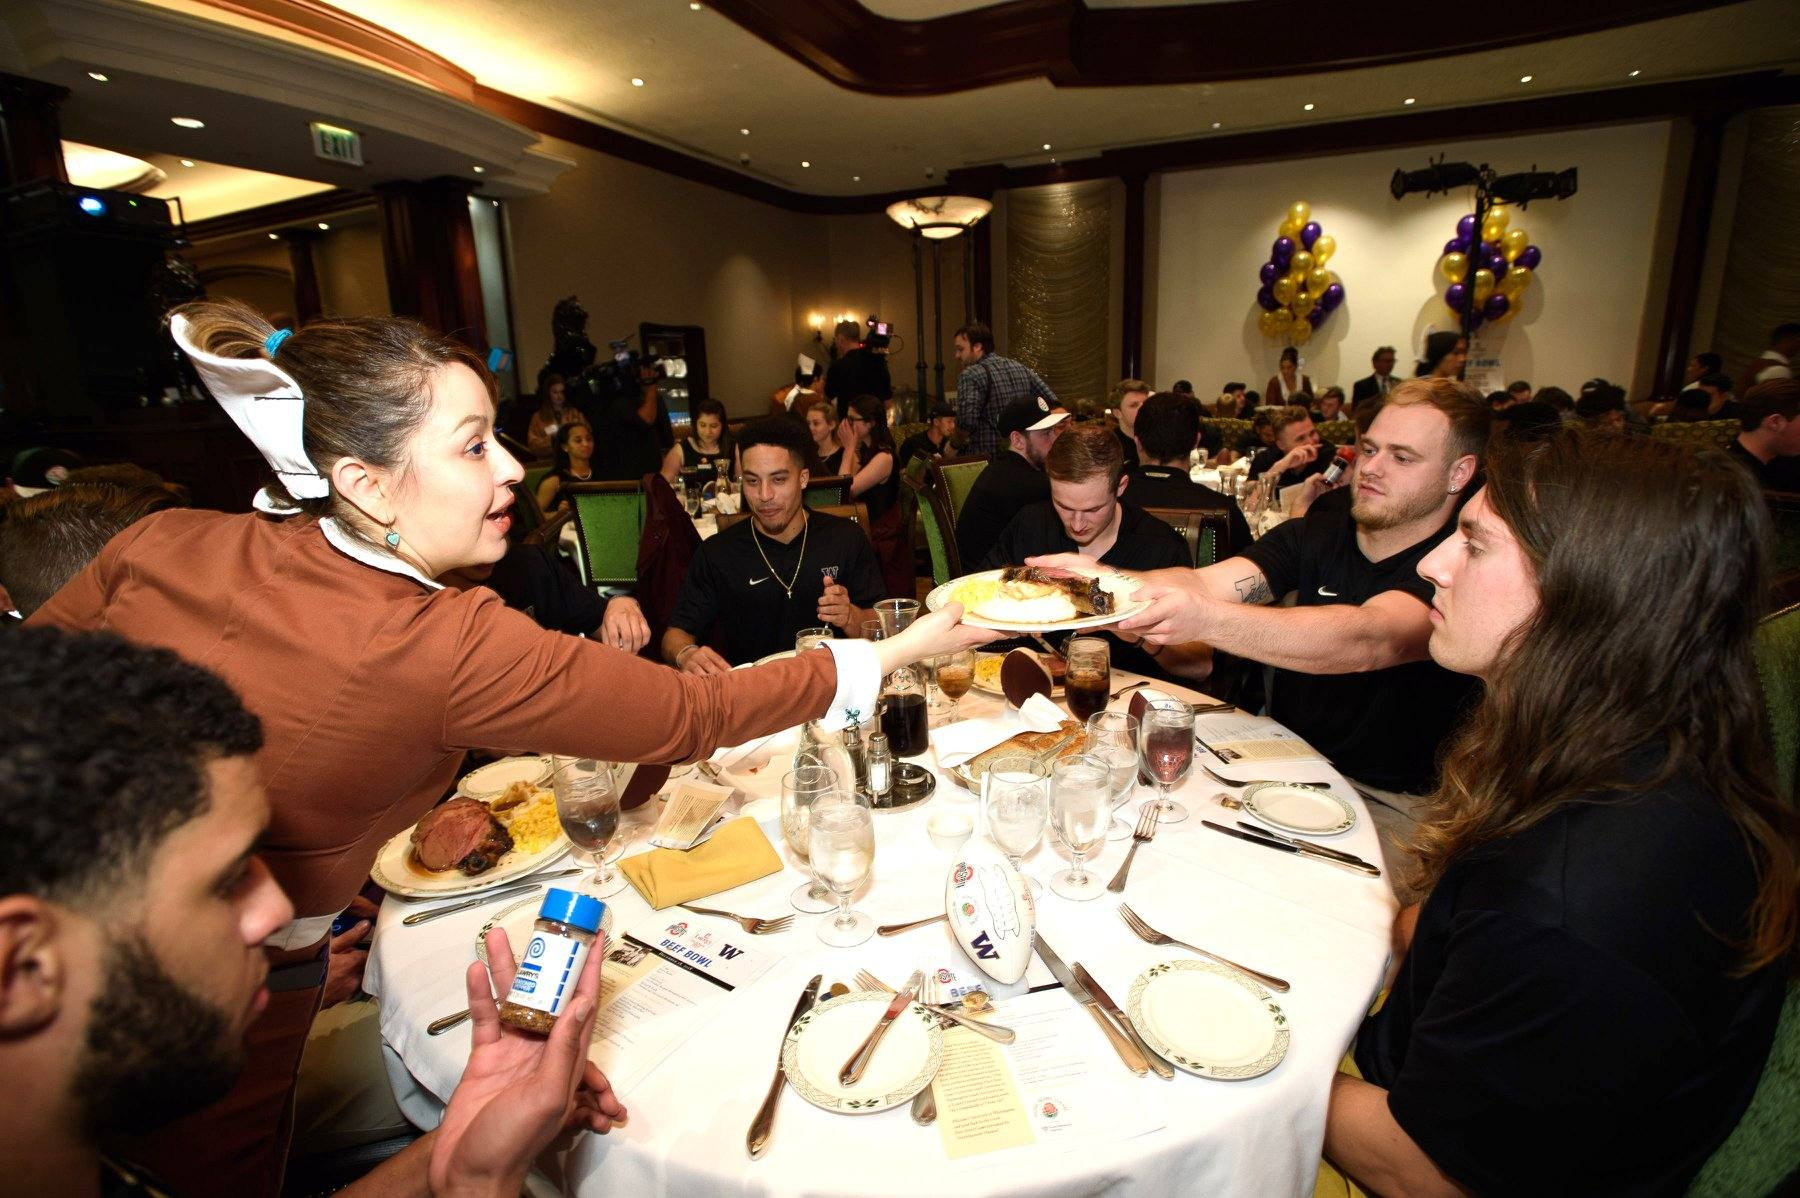 Washington Huskies dining at the Lawry's Beef Bowl in December 2018